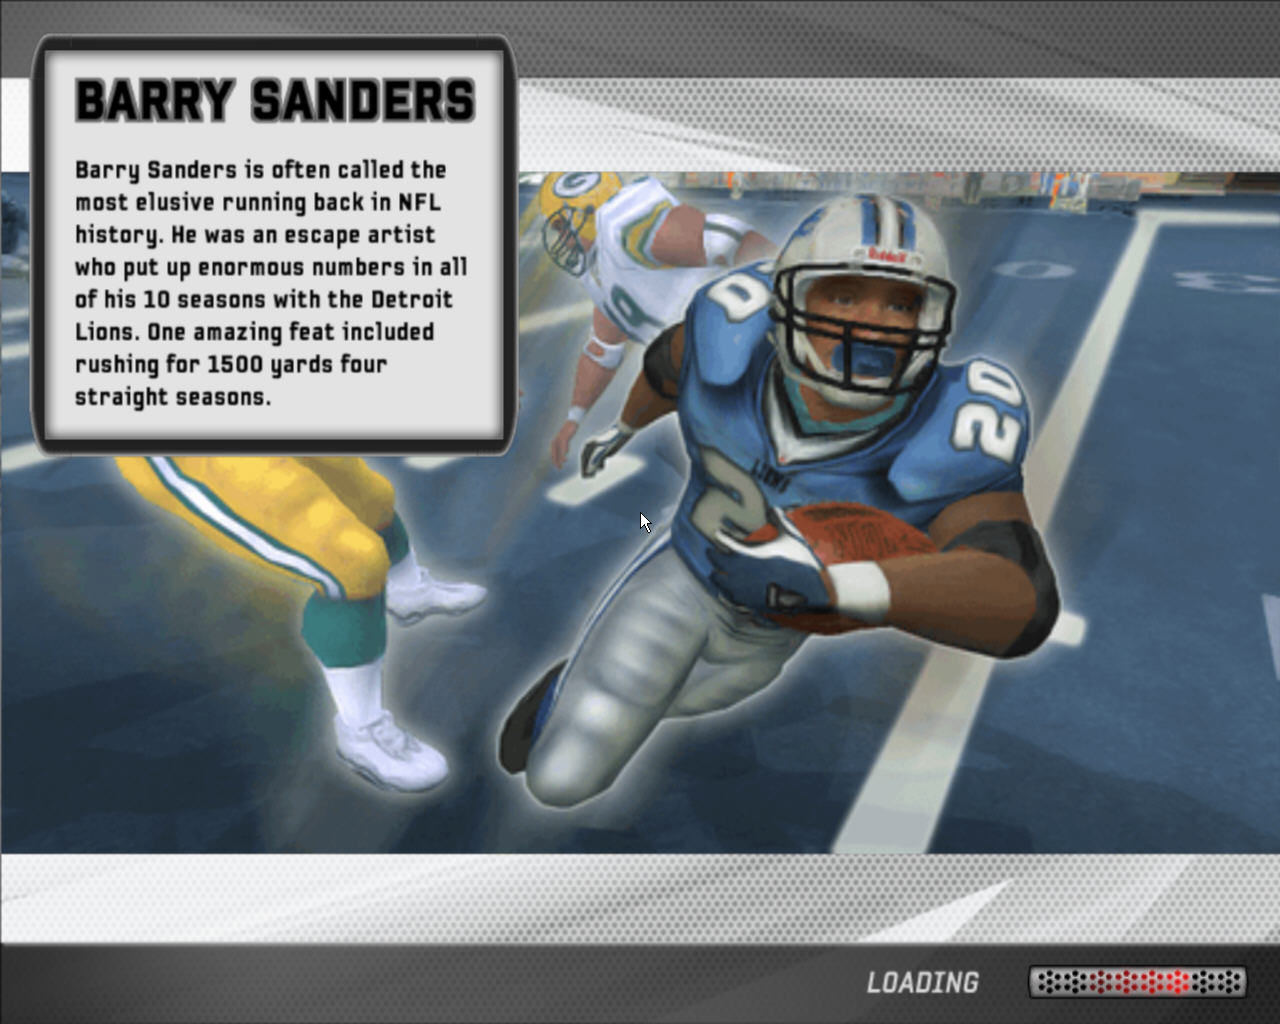 Madden NFL 07 Windows Barry Sanders in loading screen